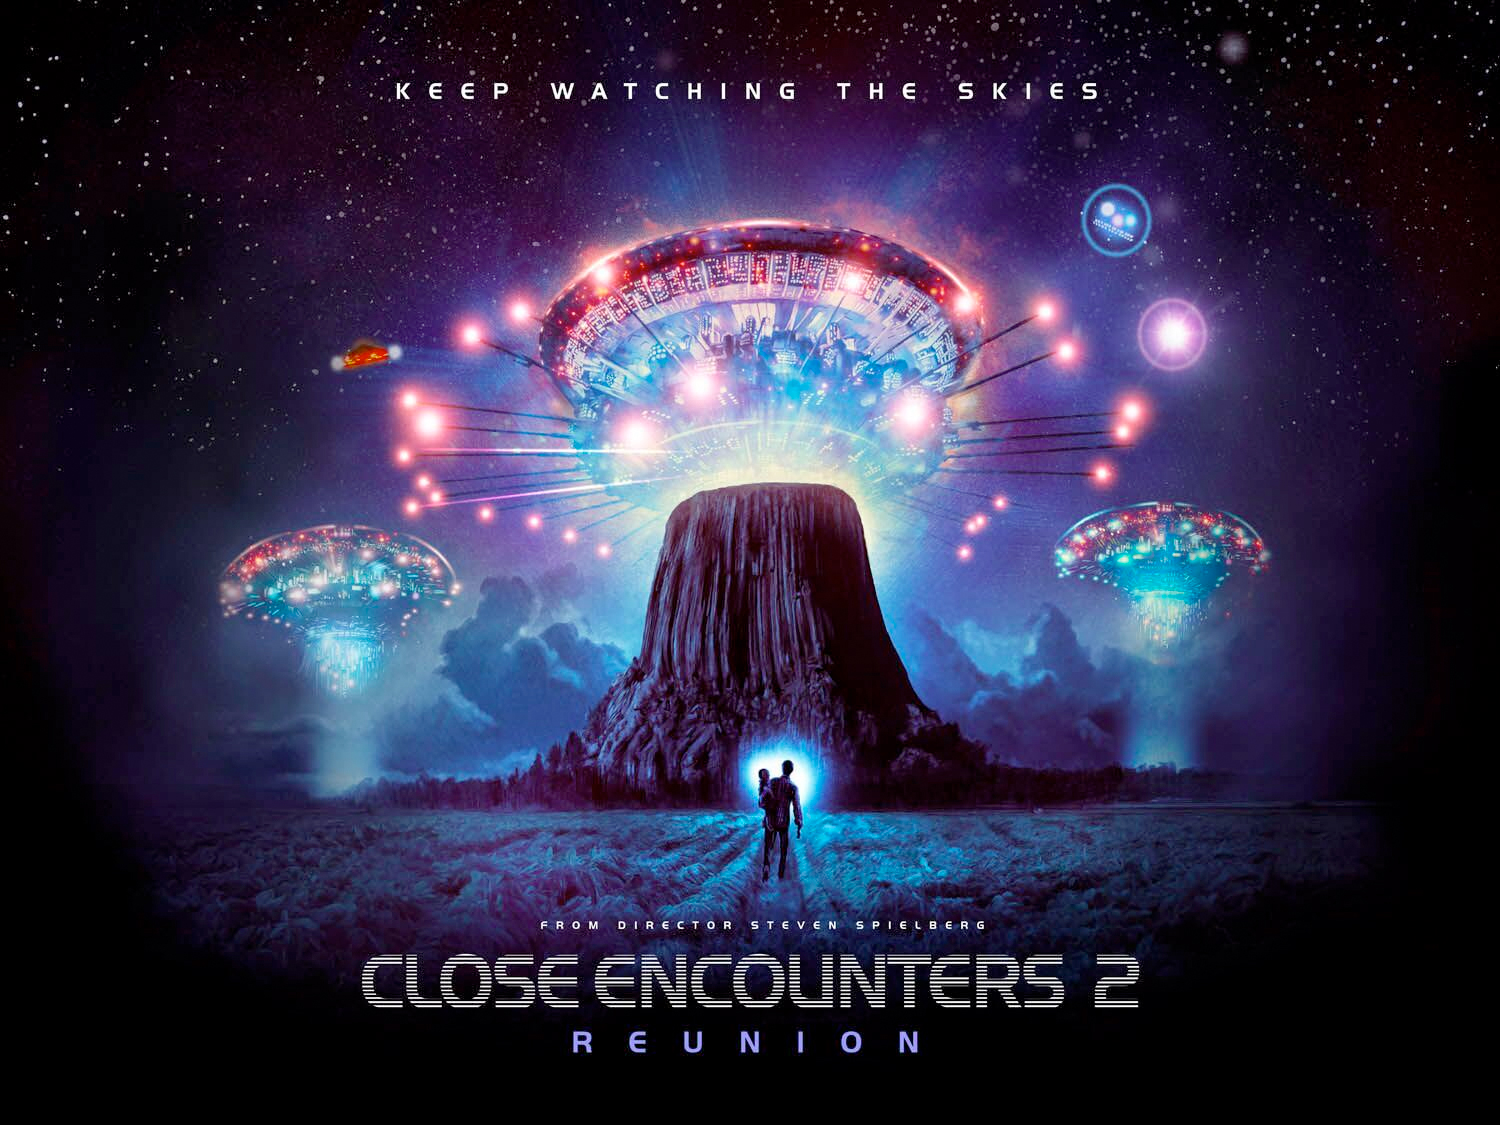 Close Encounters Sequel, Remake Or Rerelease Teased In New ...